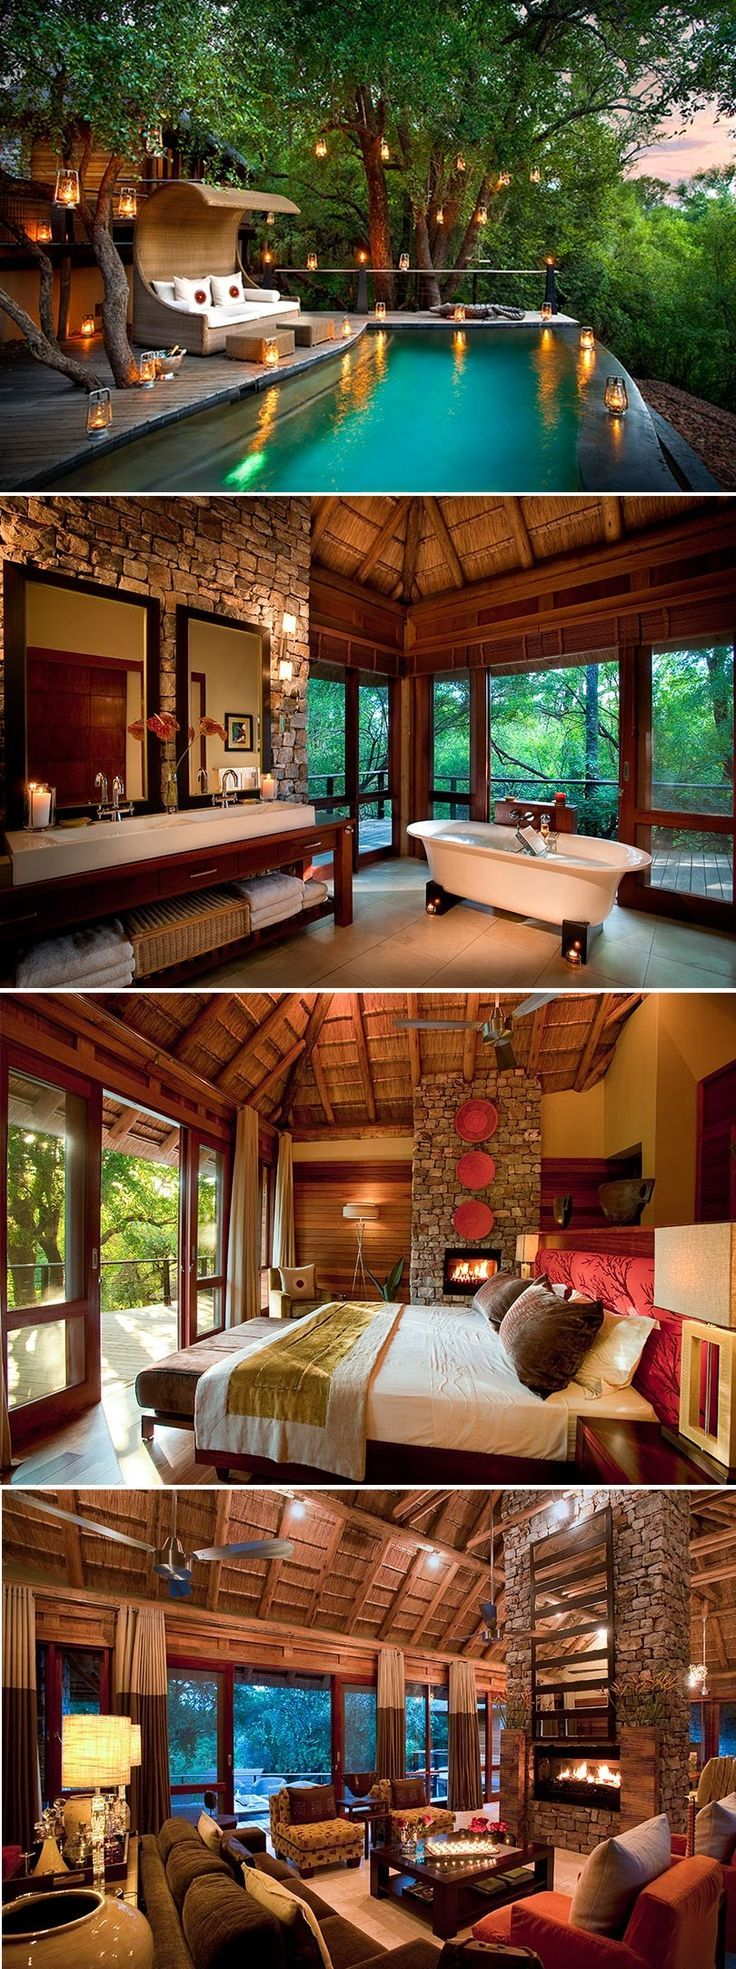 10 Best Romantic Honeymoon Places in Africa #houseinspiration